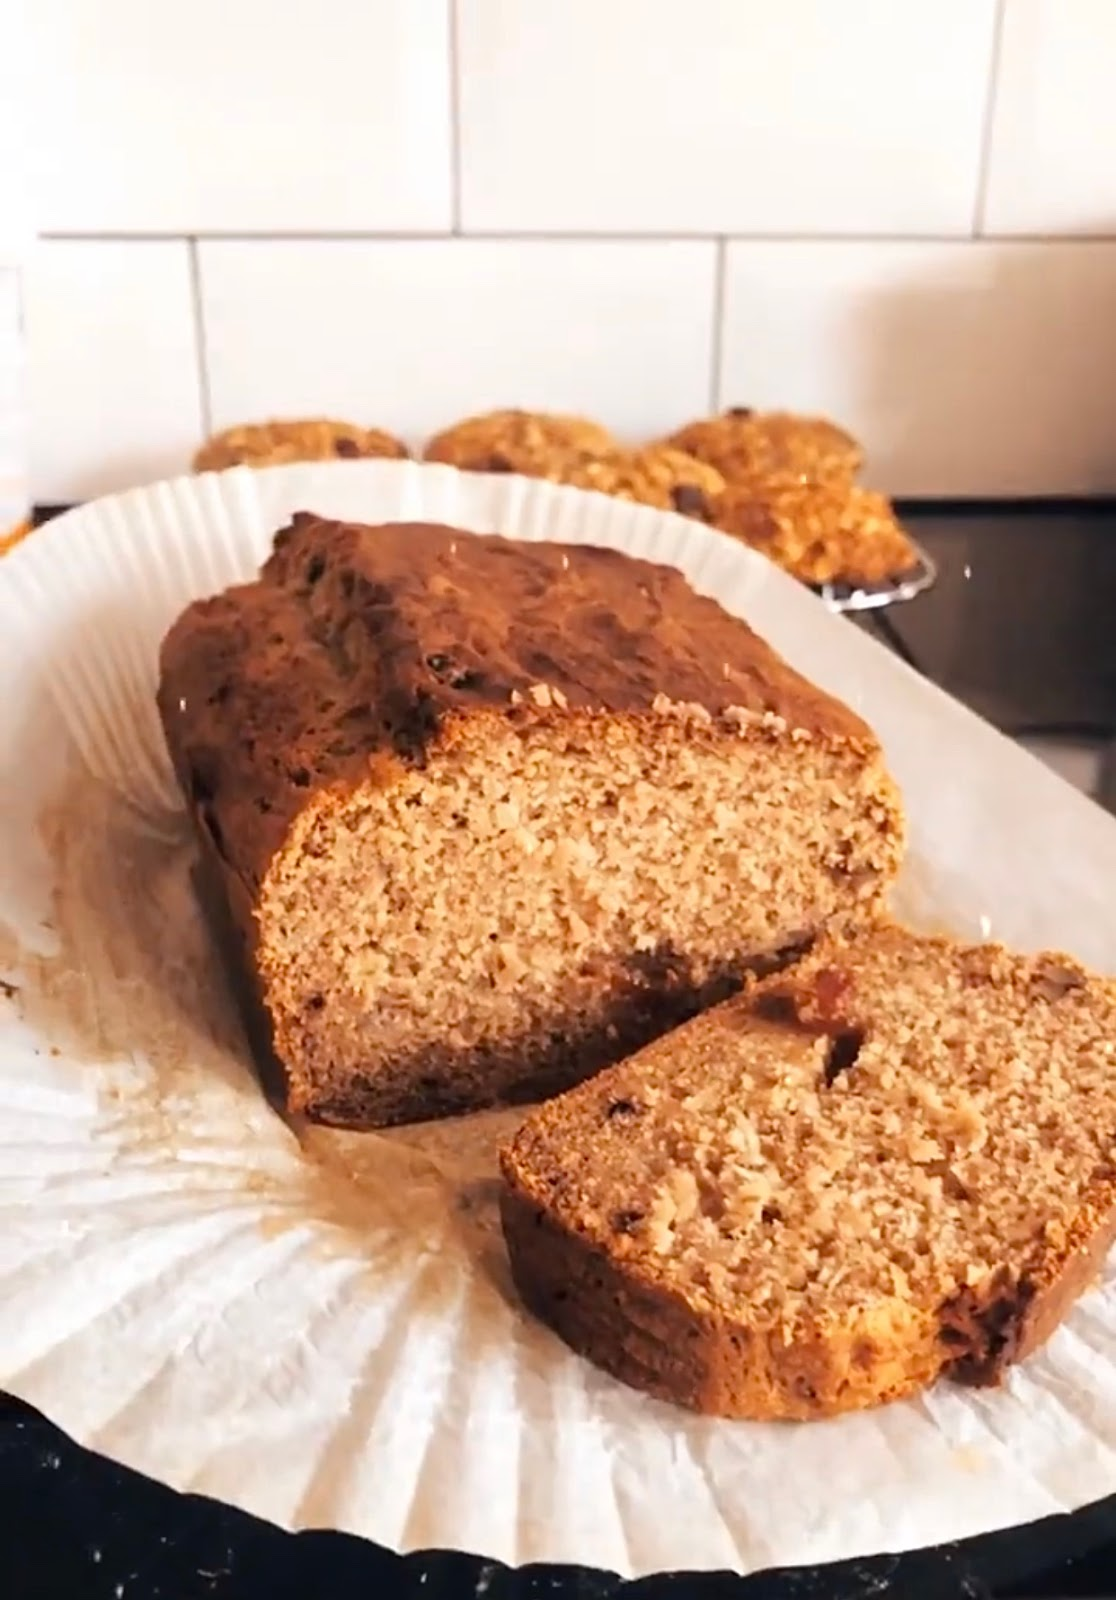 My Guilt Free and Fool Proof Walnut and Raisin Banana Bread [vg]